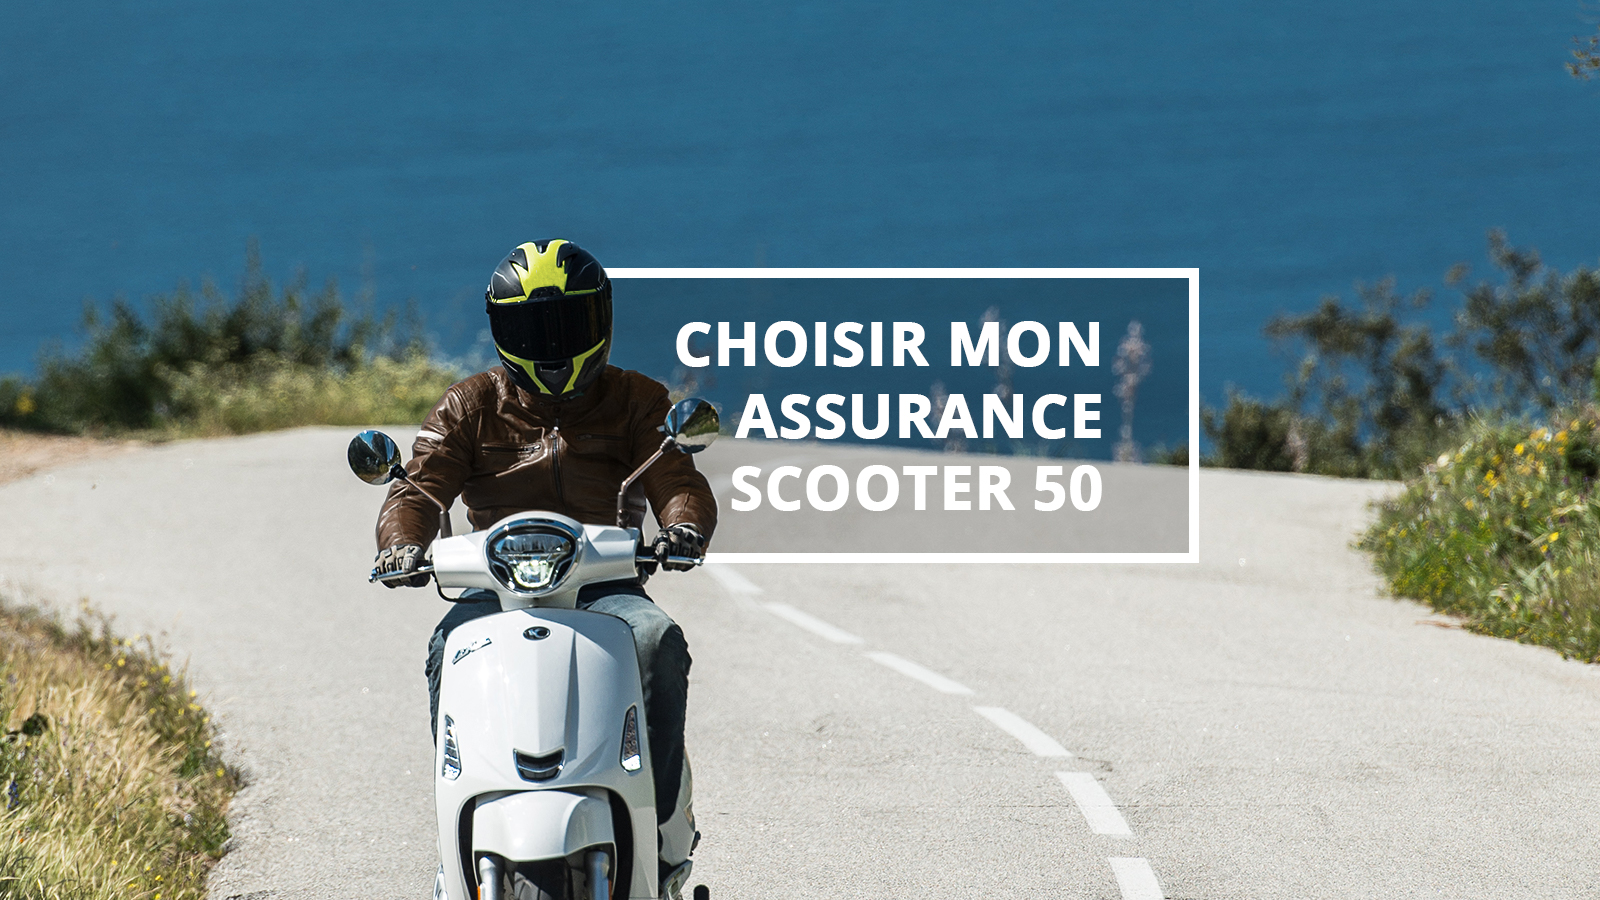 assurance-scooter-50-featured